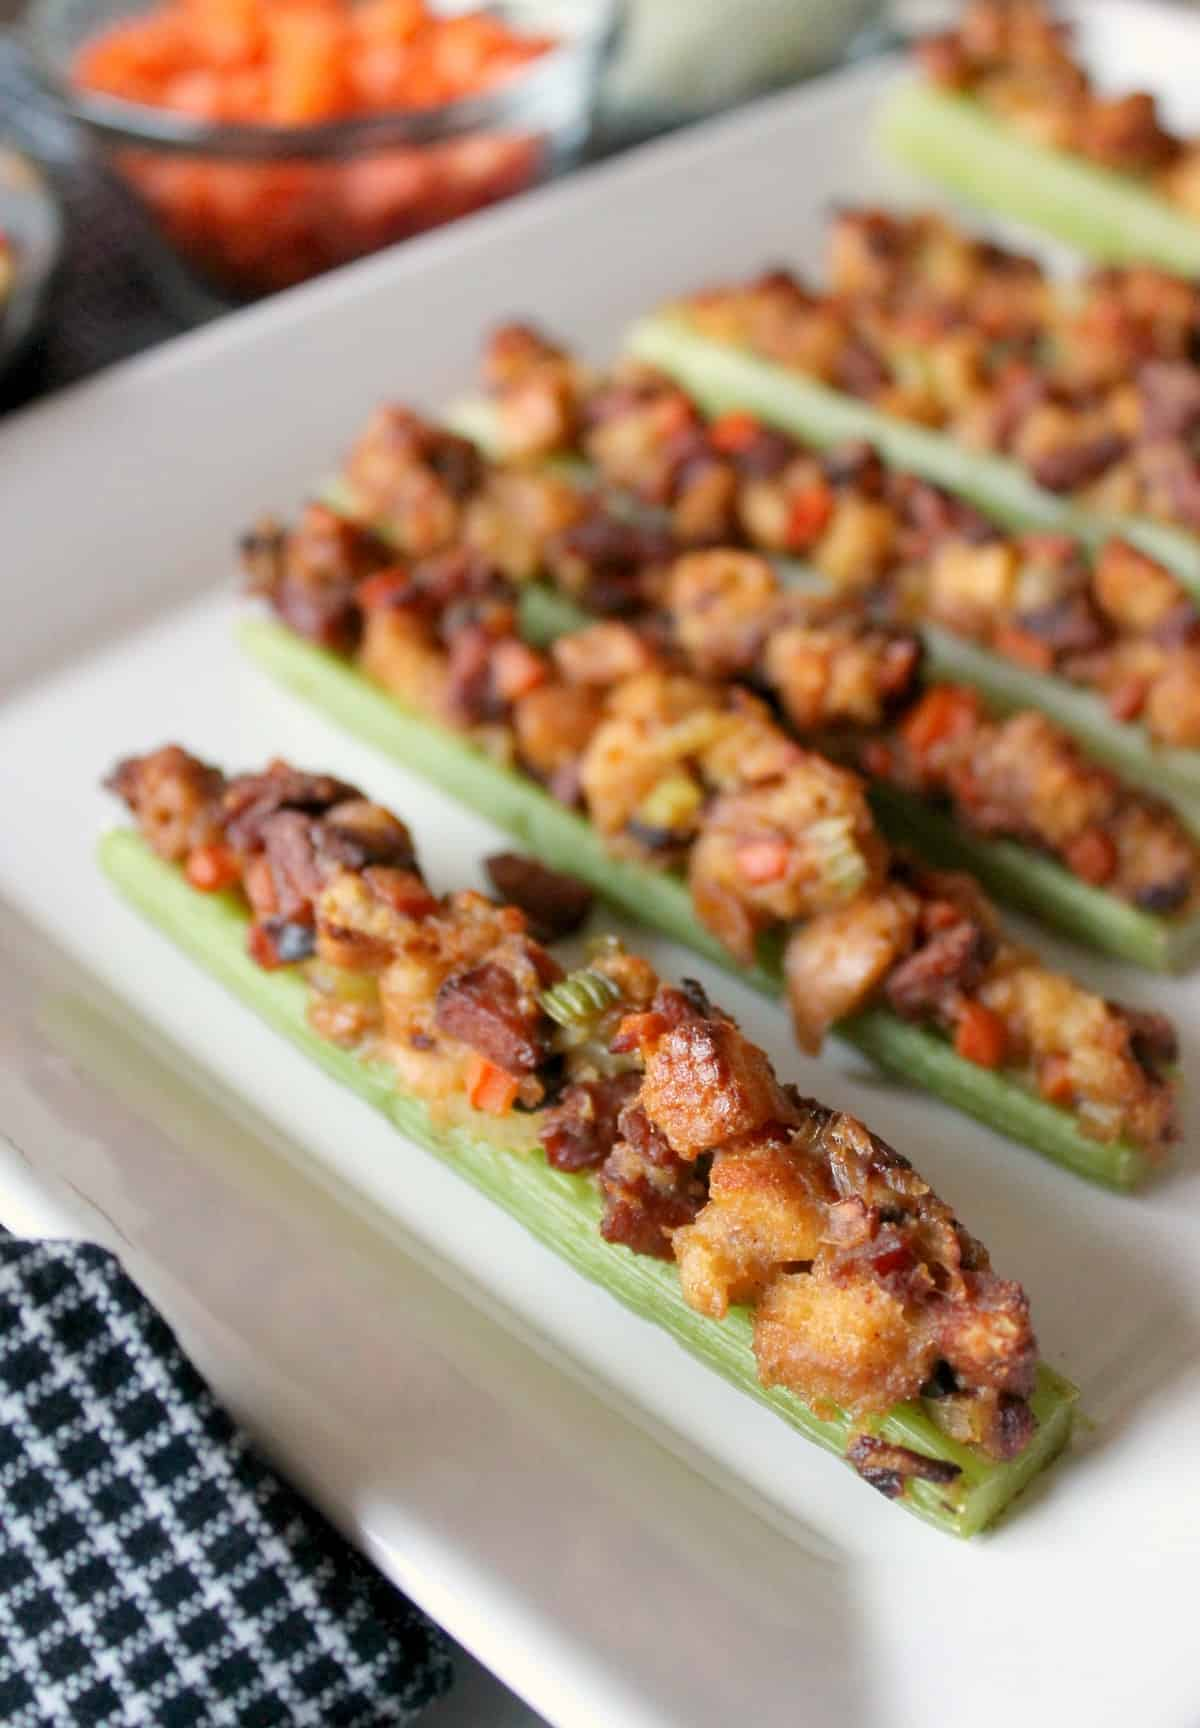 These roasted celery boats are stuffed with cajun style stuffing